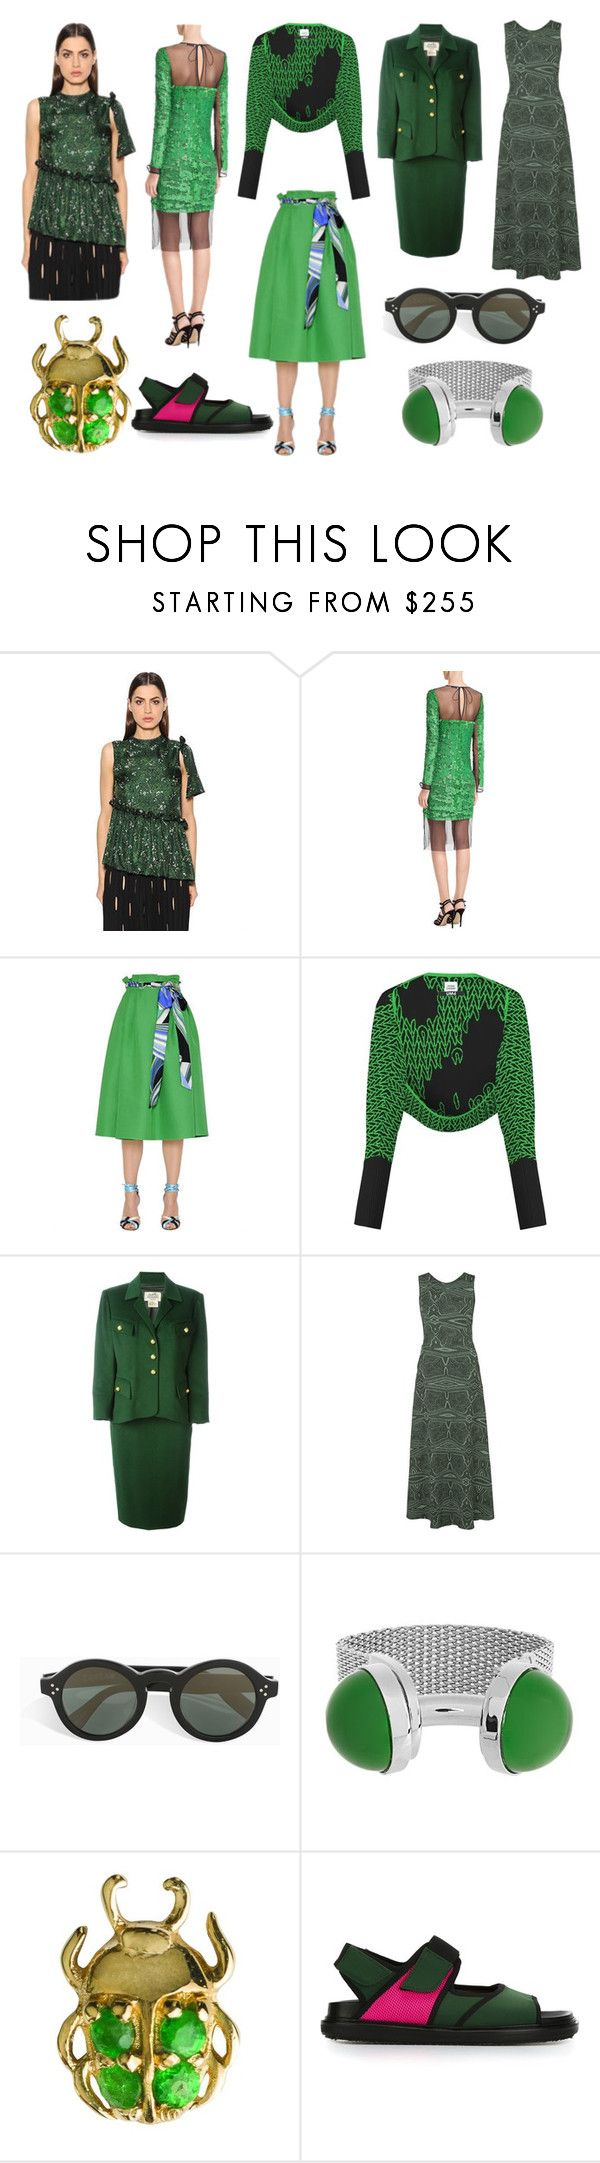 """Fashion Store"" by donna-wang1 ❤ liked on Polyvore featuring Marco de Vincenzo, Emilio Pucci, Opening Ceremony, Hermès, Lilly Sarti, Zanzan, Balenciaga, Loquet and Marni"